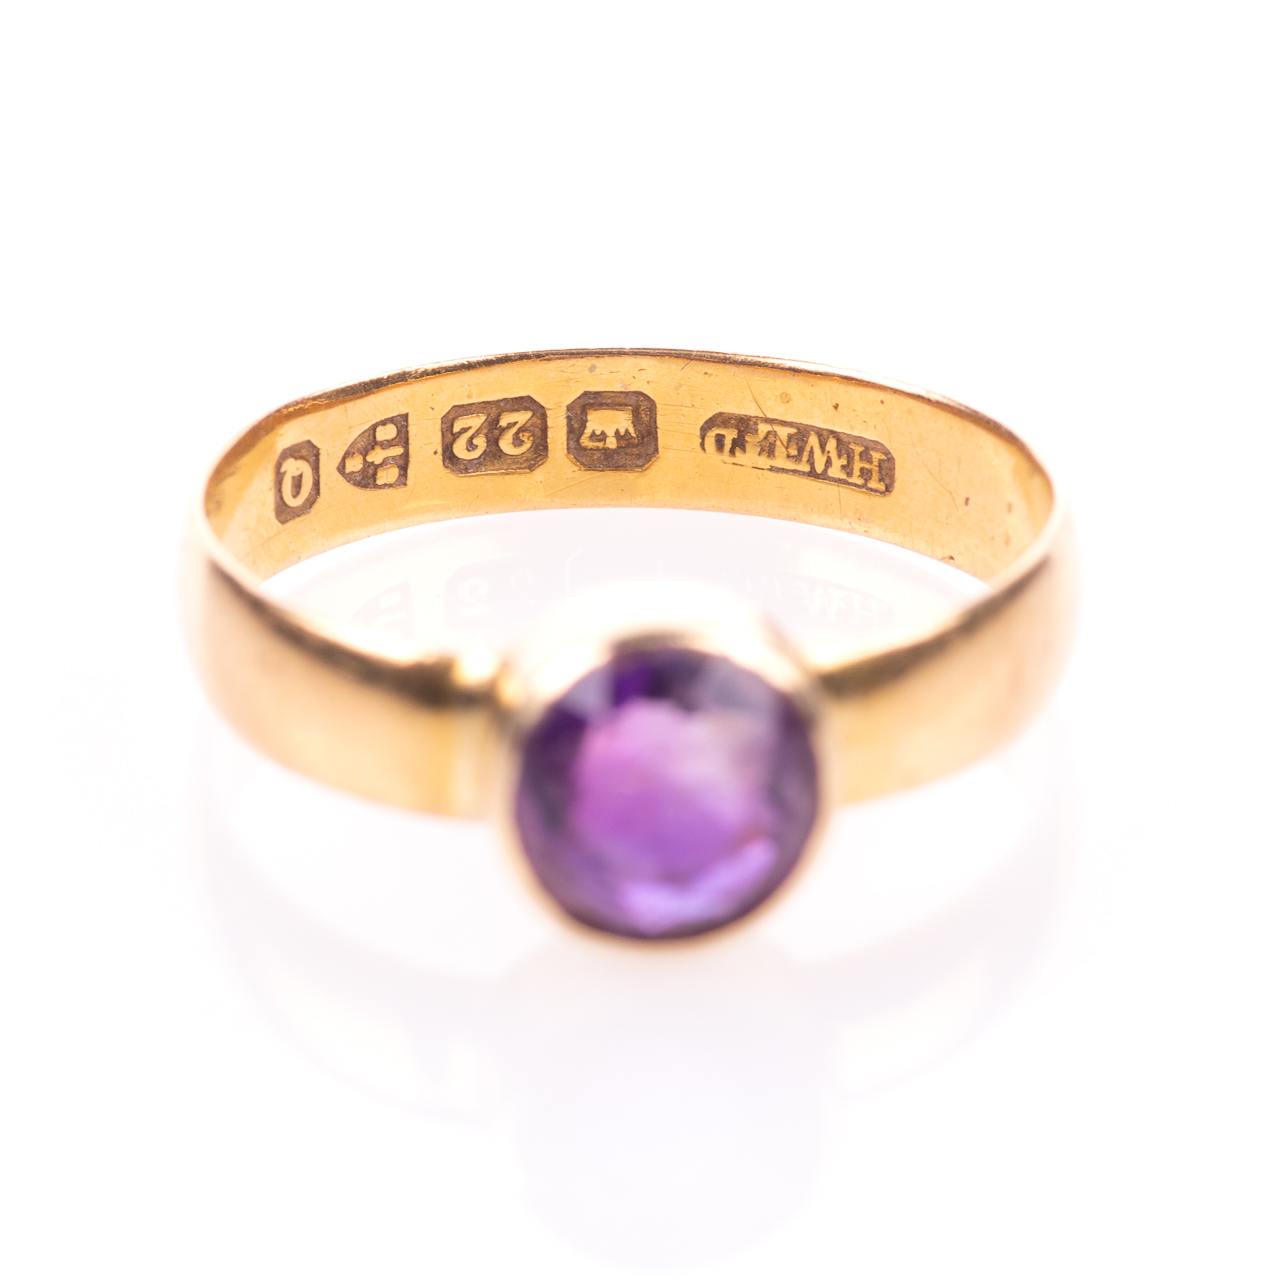 22ct Gold Victorian Amethyst Ring Chester 1899, Howard & Walsh - Image 4 of 7